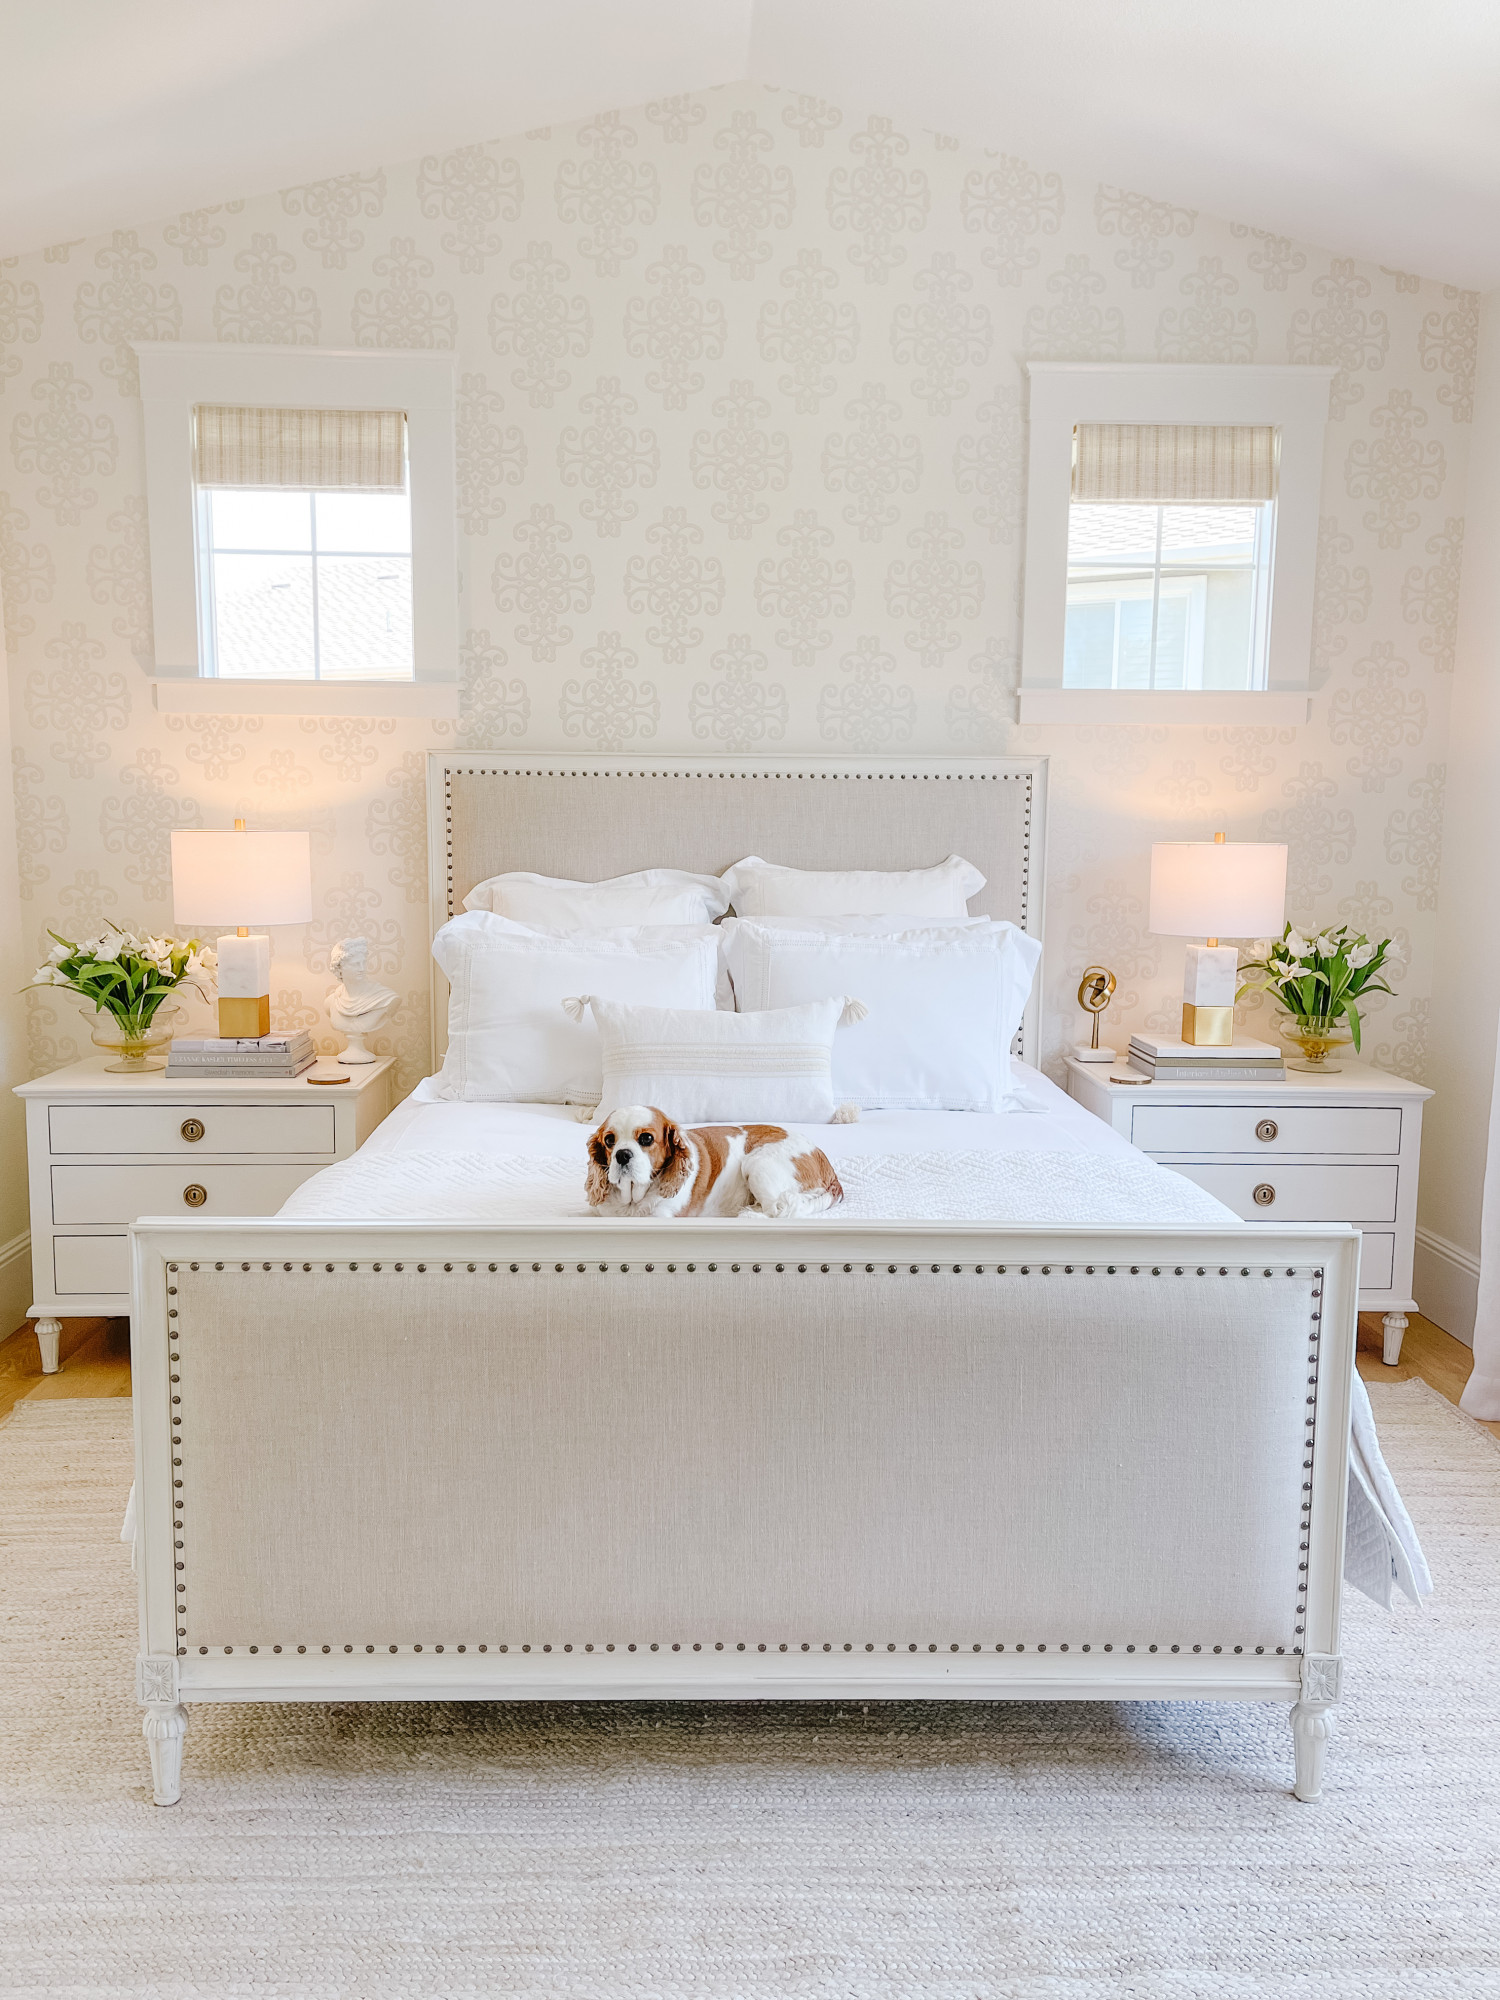 Bedroom Decor Refresh Affordable Rug Lamp Styled Room